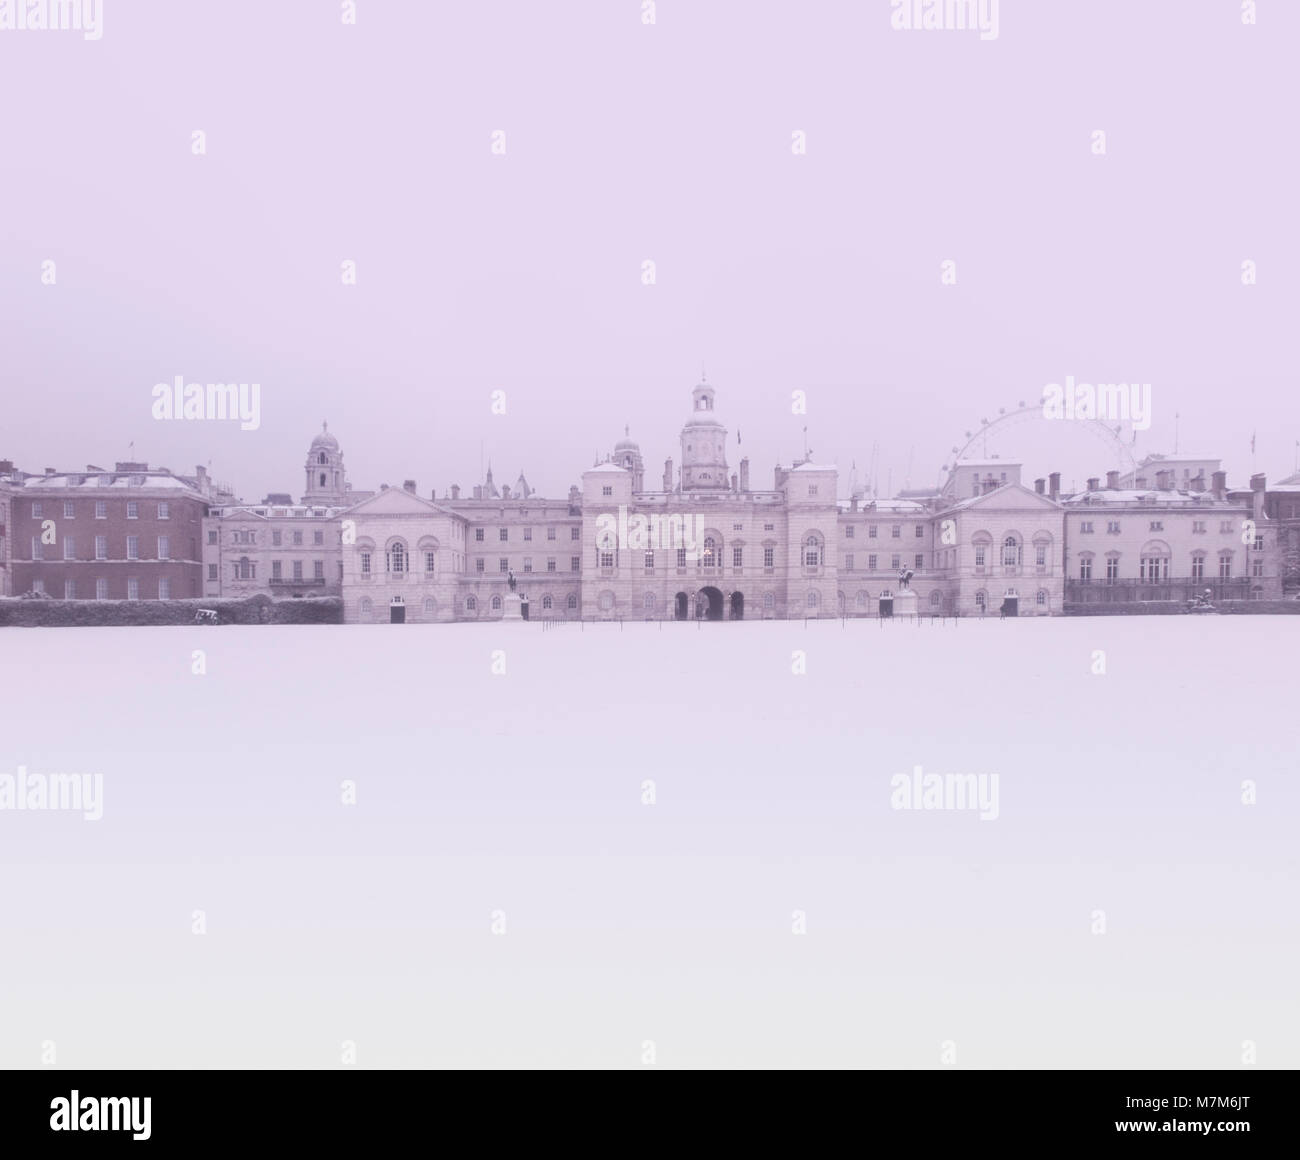 Horseguard's Parade tourist attraction after a heavy snowfall - Stock Image